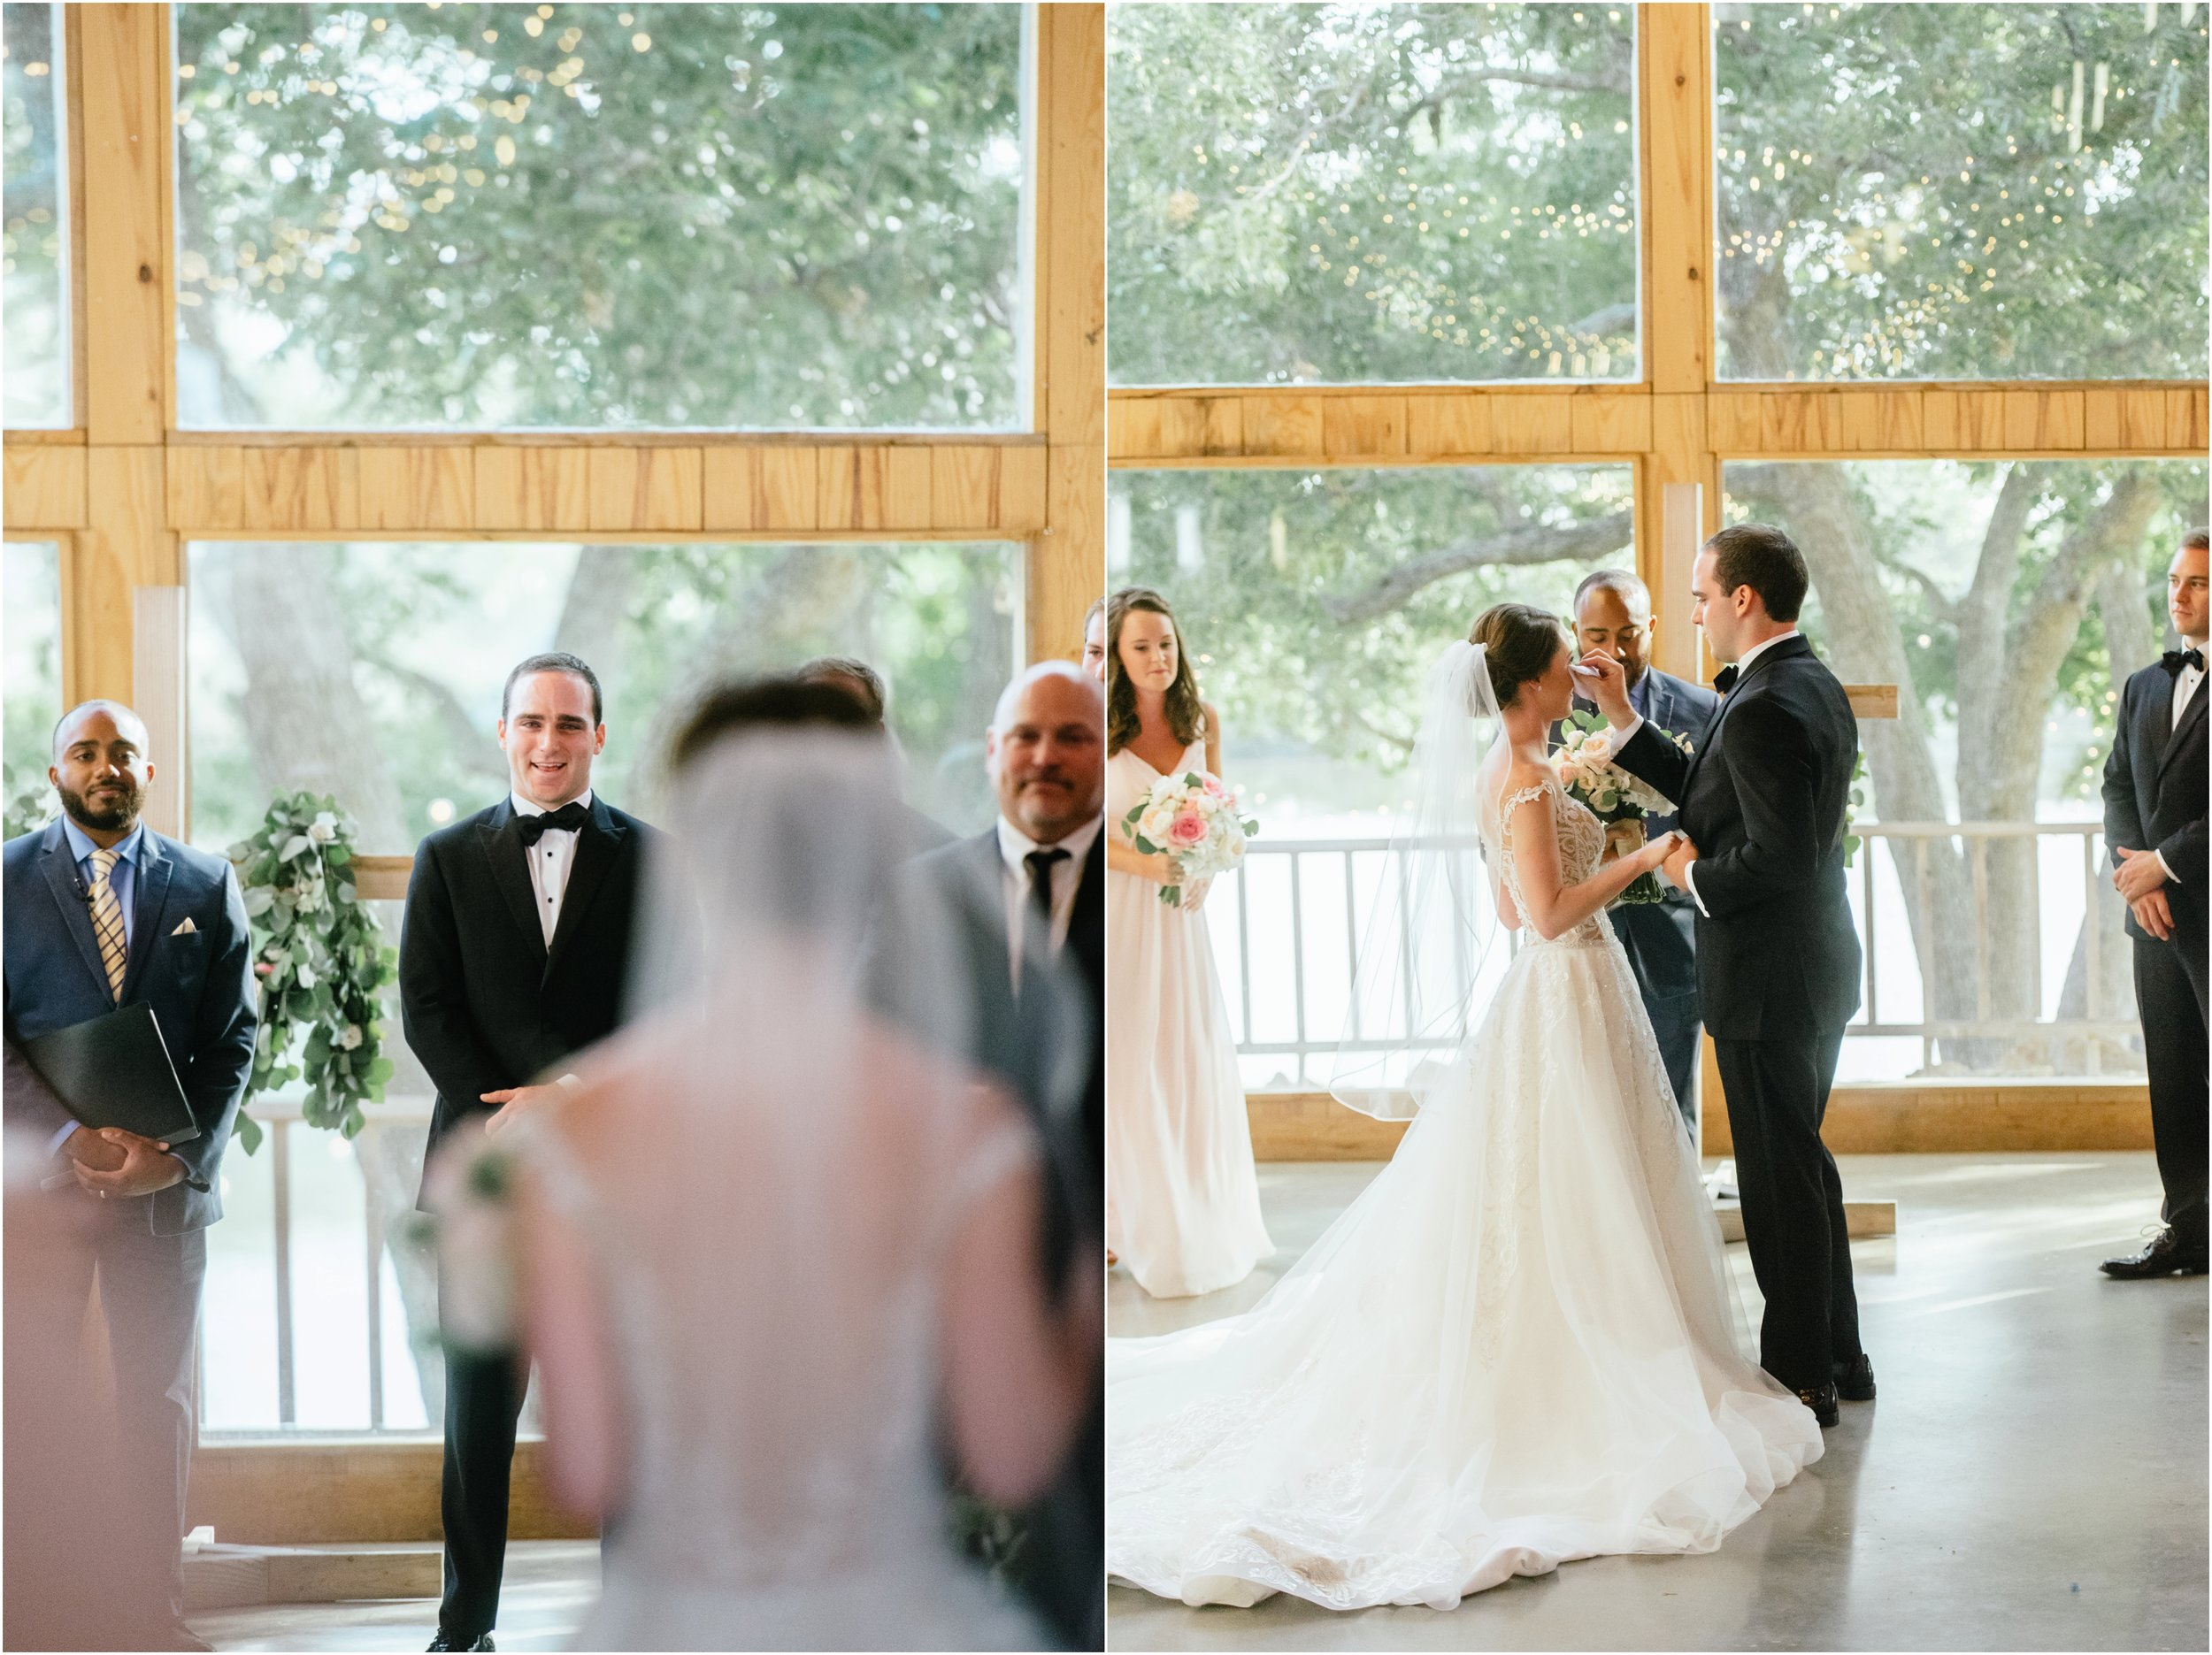 dallasweddingphotographer_fortworthweddingphotographer_texasweddingphotographer_mattandjulieweddings_whiterocklakewedding_KayleighClay_0021.jpg